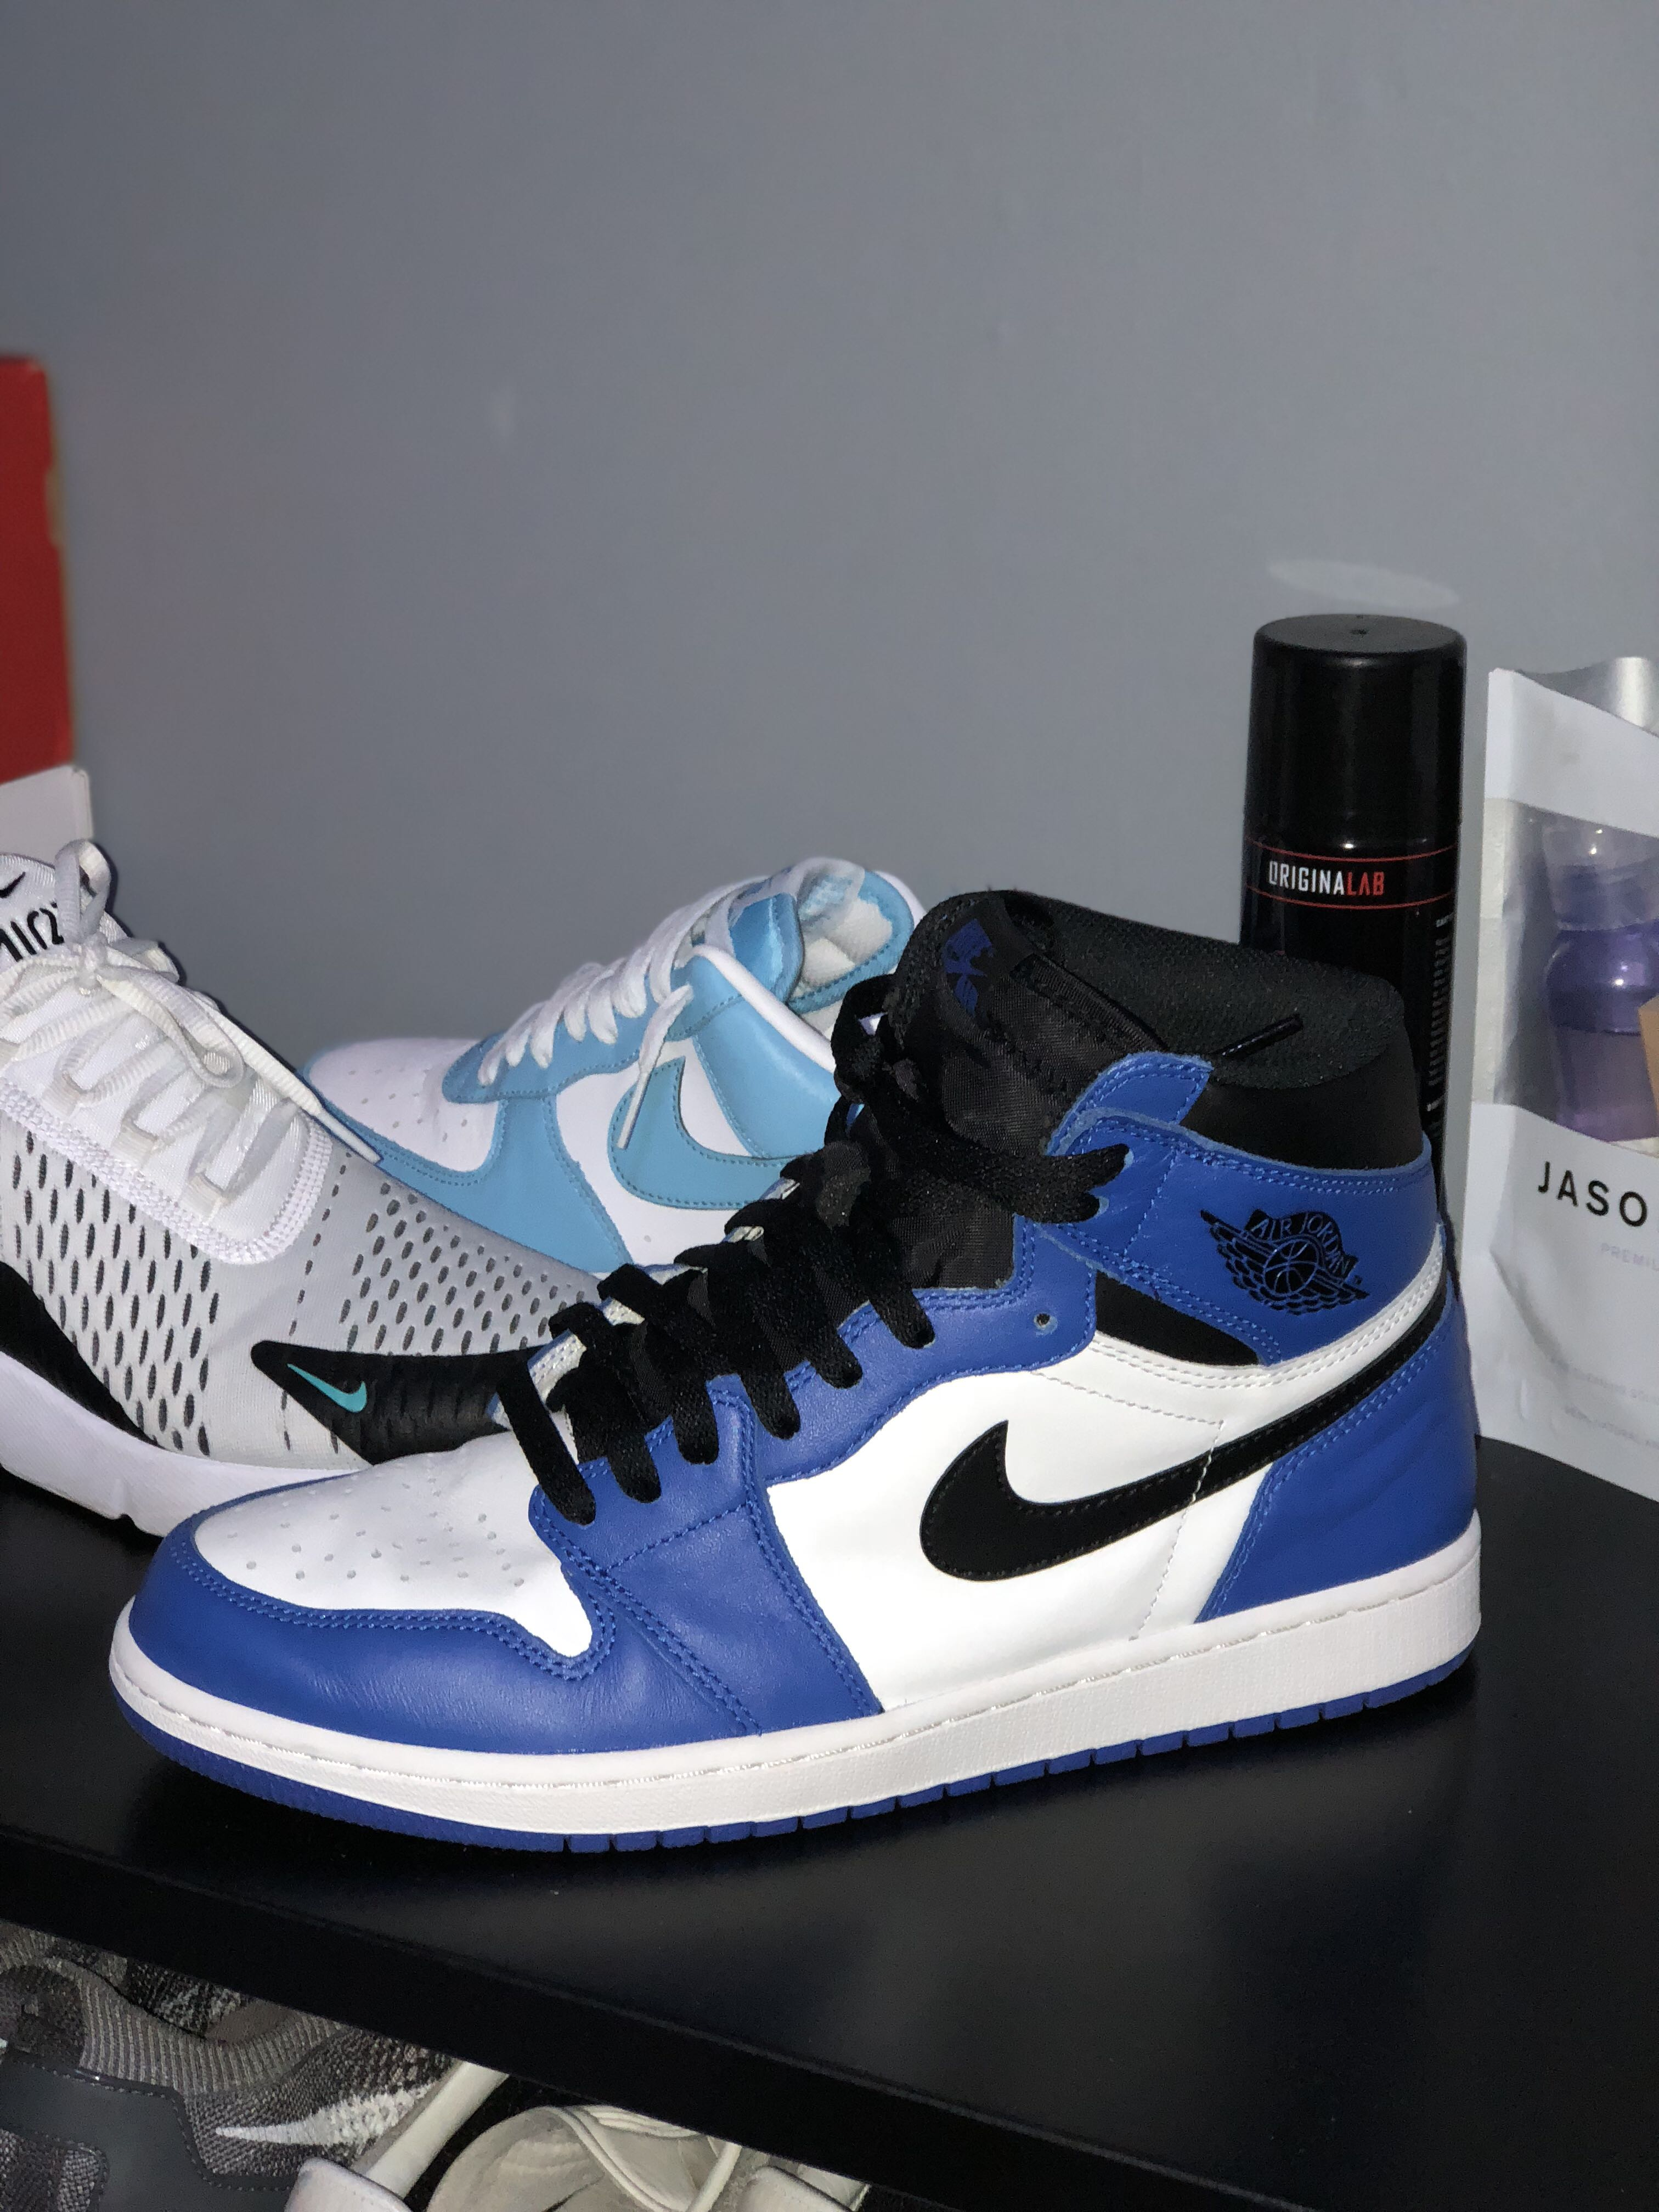 new concept fbe64 b06ed US10 Air Jordan 1 Game Royal, Men s Fashion, Footwear, Sneakers on Carousell